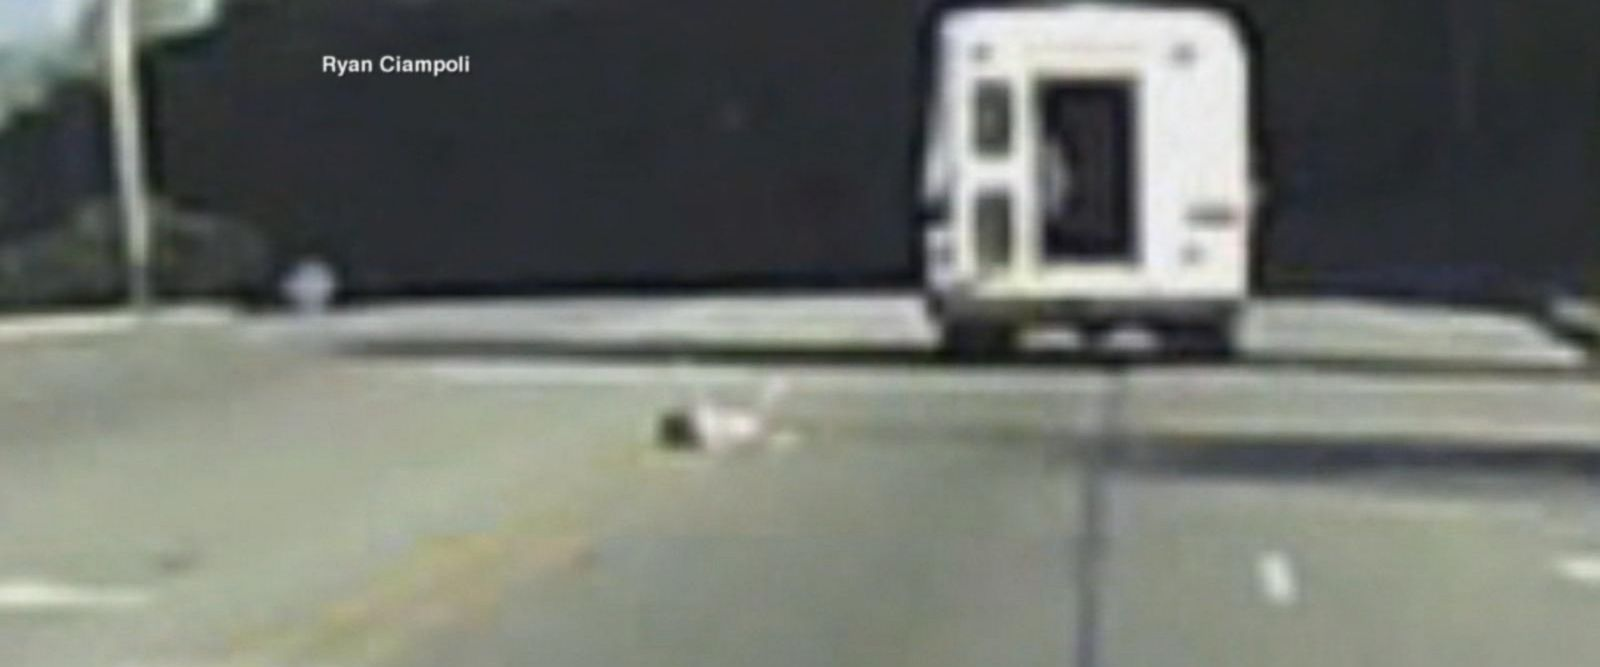 VIDEO: Dramatic video of a child falling from a bus on the highway